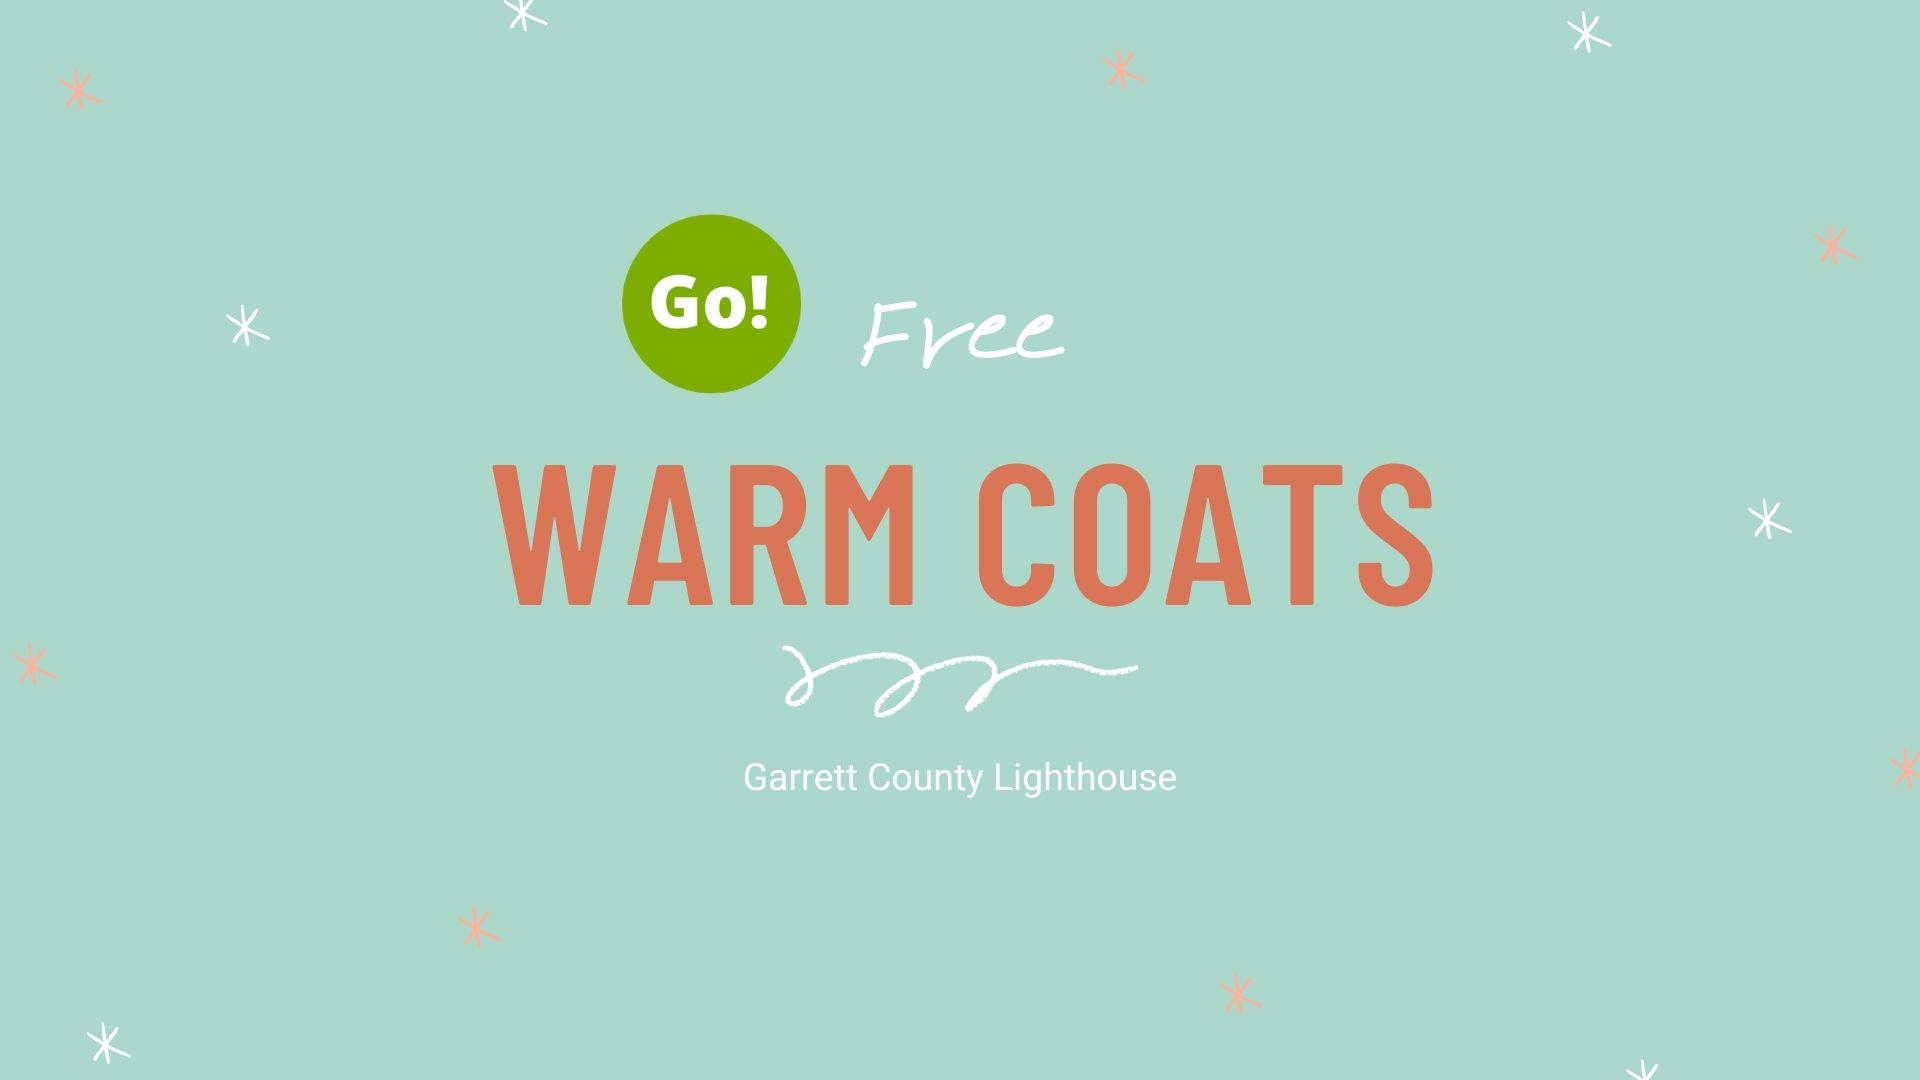 Free Blankets, Coats & Winter Gear For Adults In Need – +3 Prize Points